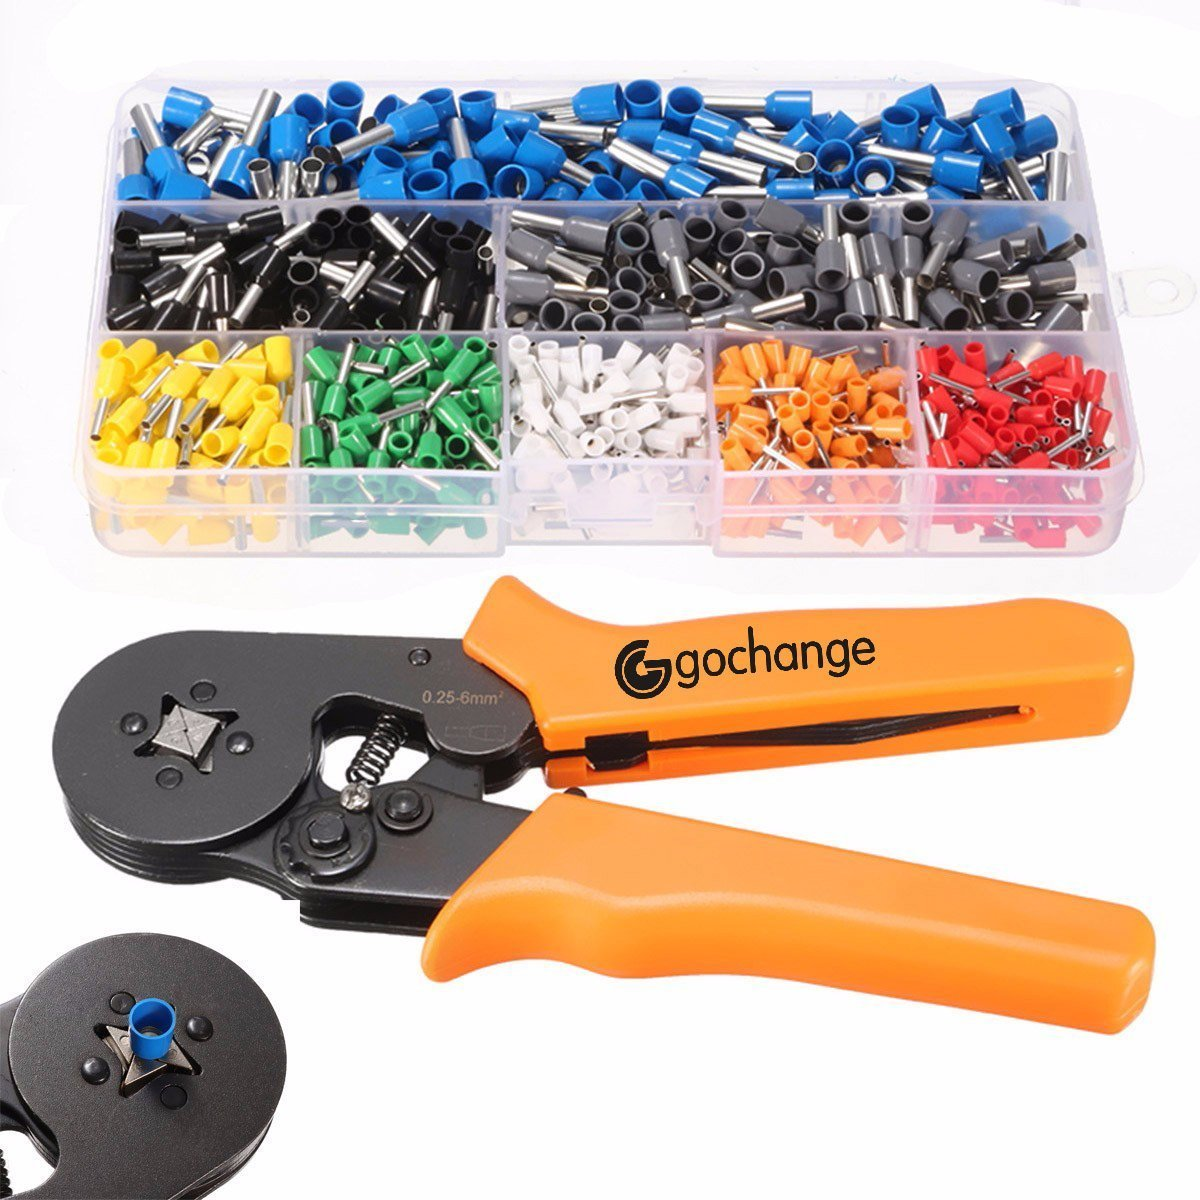 Crimp Tool Kit, GOCHANGE Quadrilateral Crimper Plier Wire Terminal and Connection Kit with 0.25-6.0mm² Ferrule Crimper Plier/Wire Stripper & 800 x Connectors Terminal